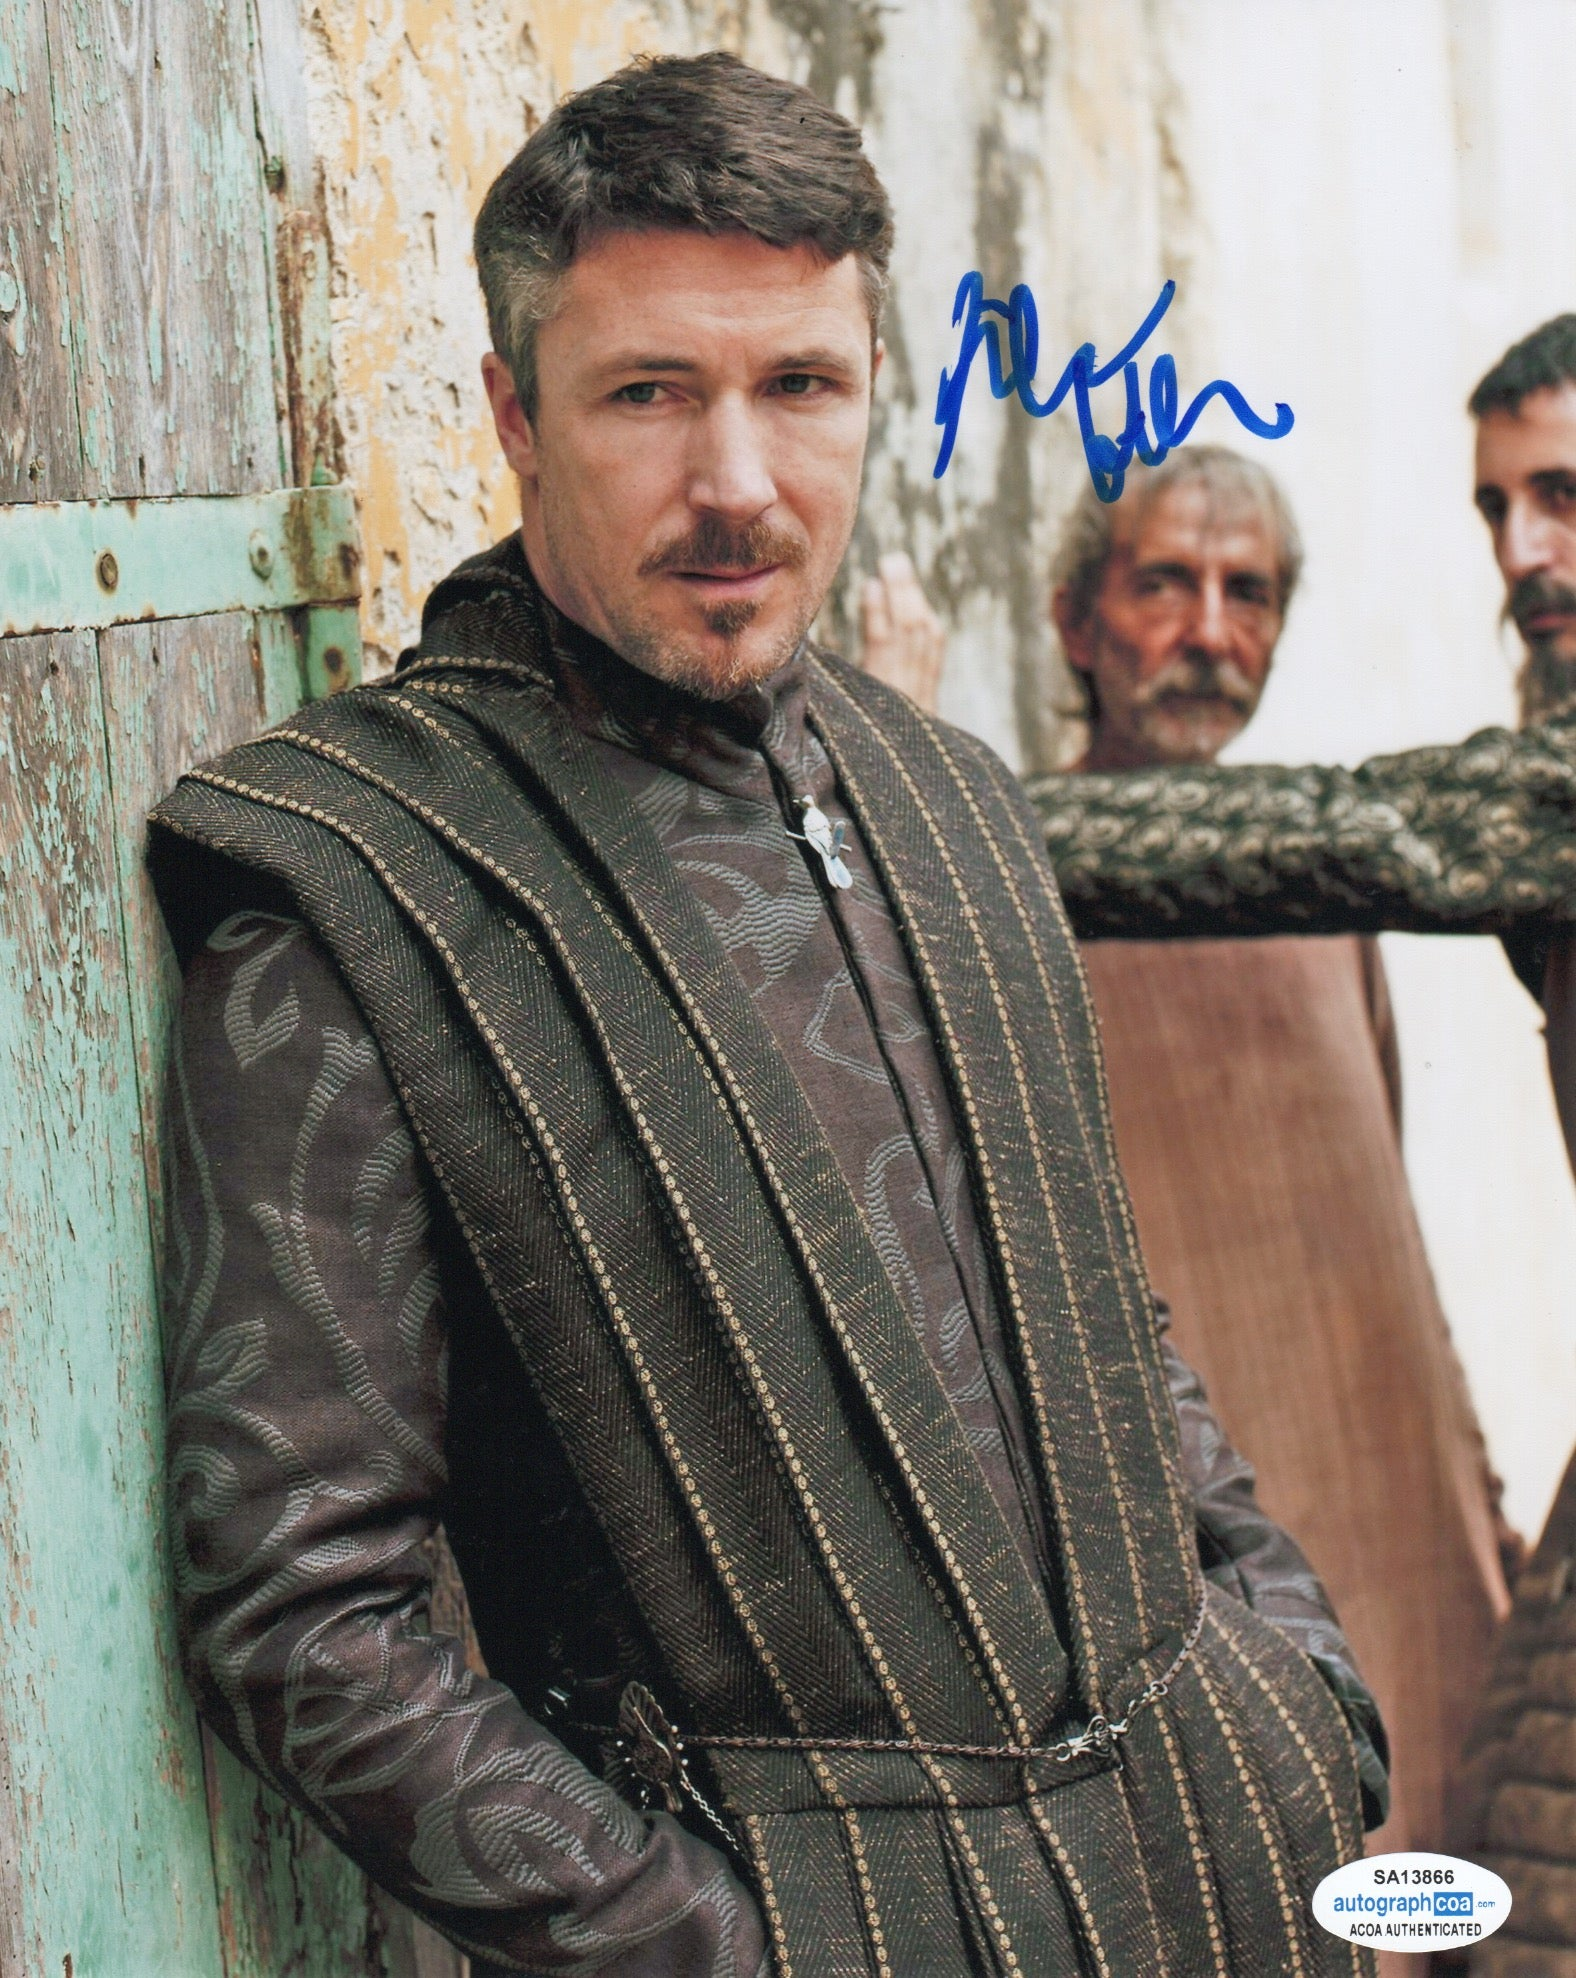 Aidan Gillen Game of Thrones Signed Autograph 8x10 Photo ACOA #13 - Outlaw Hobbies Authentic Autographs